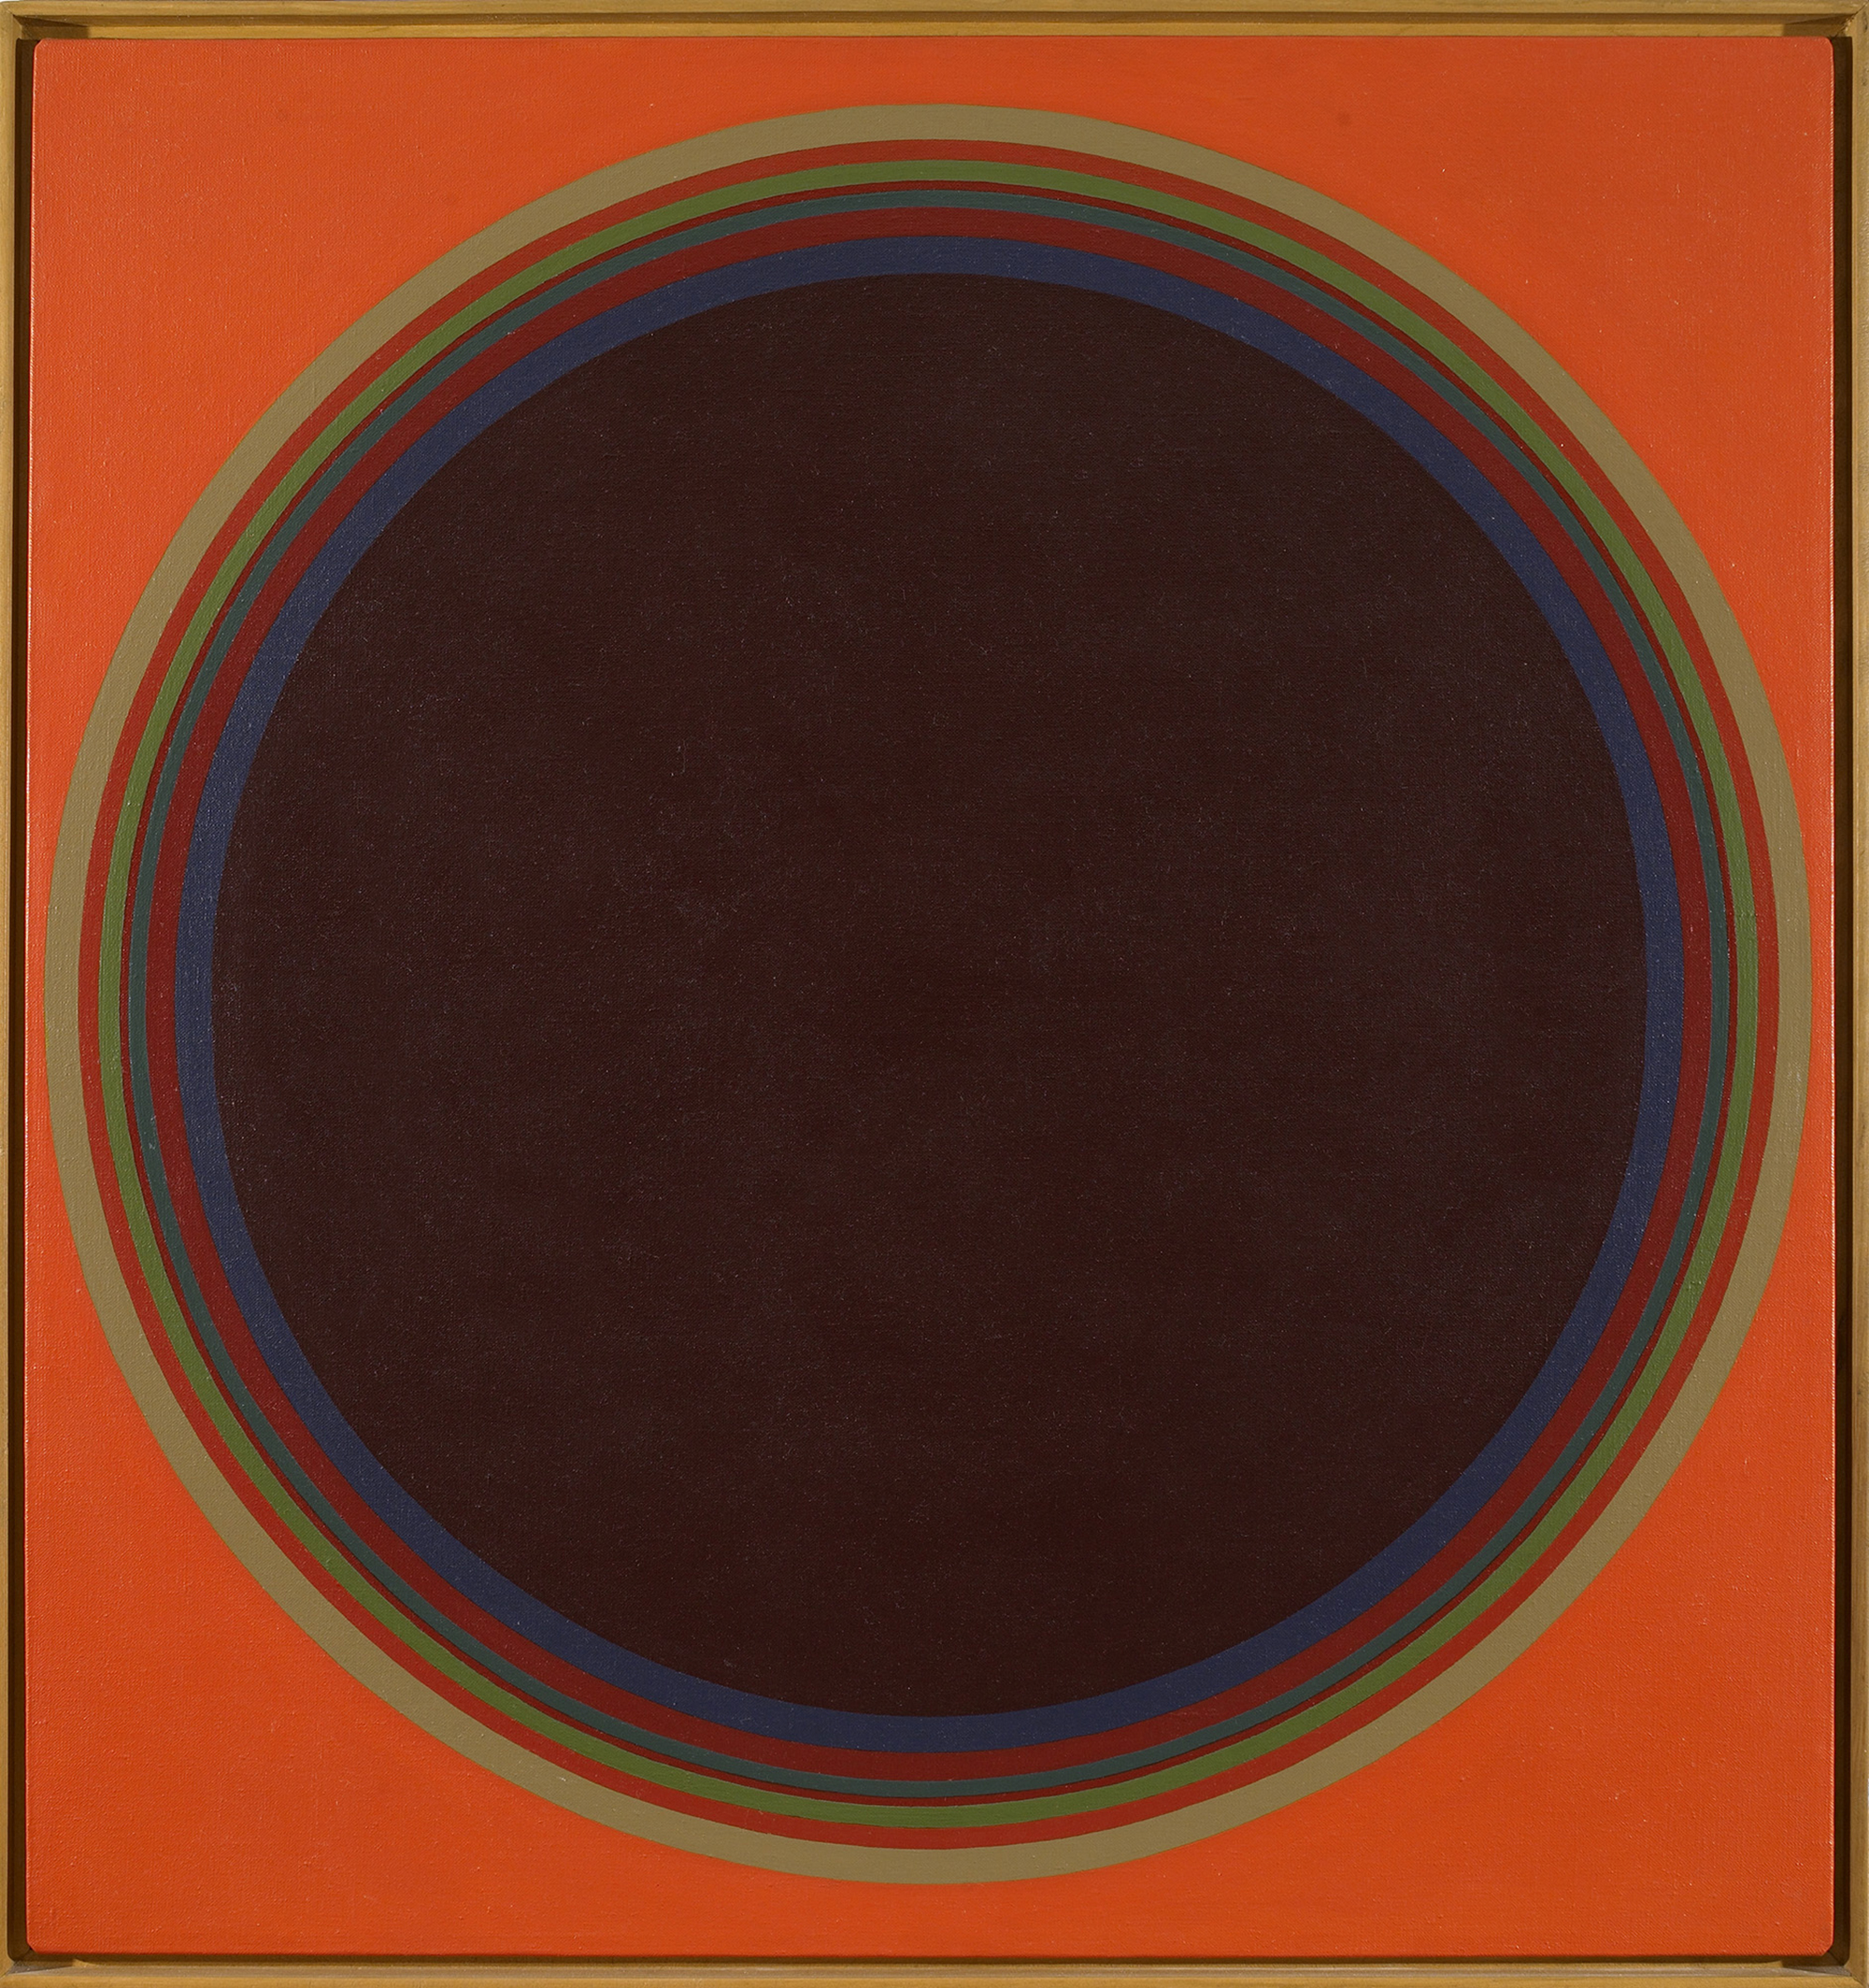 Disc #2, 1974  , acrylic on linen canvas, 36 x 34 inches